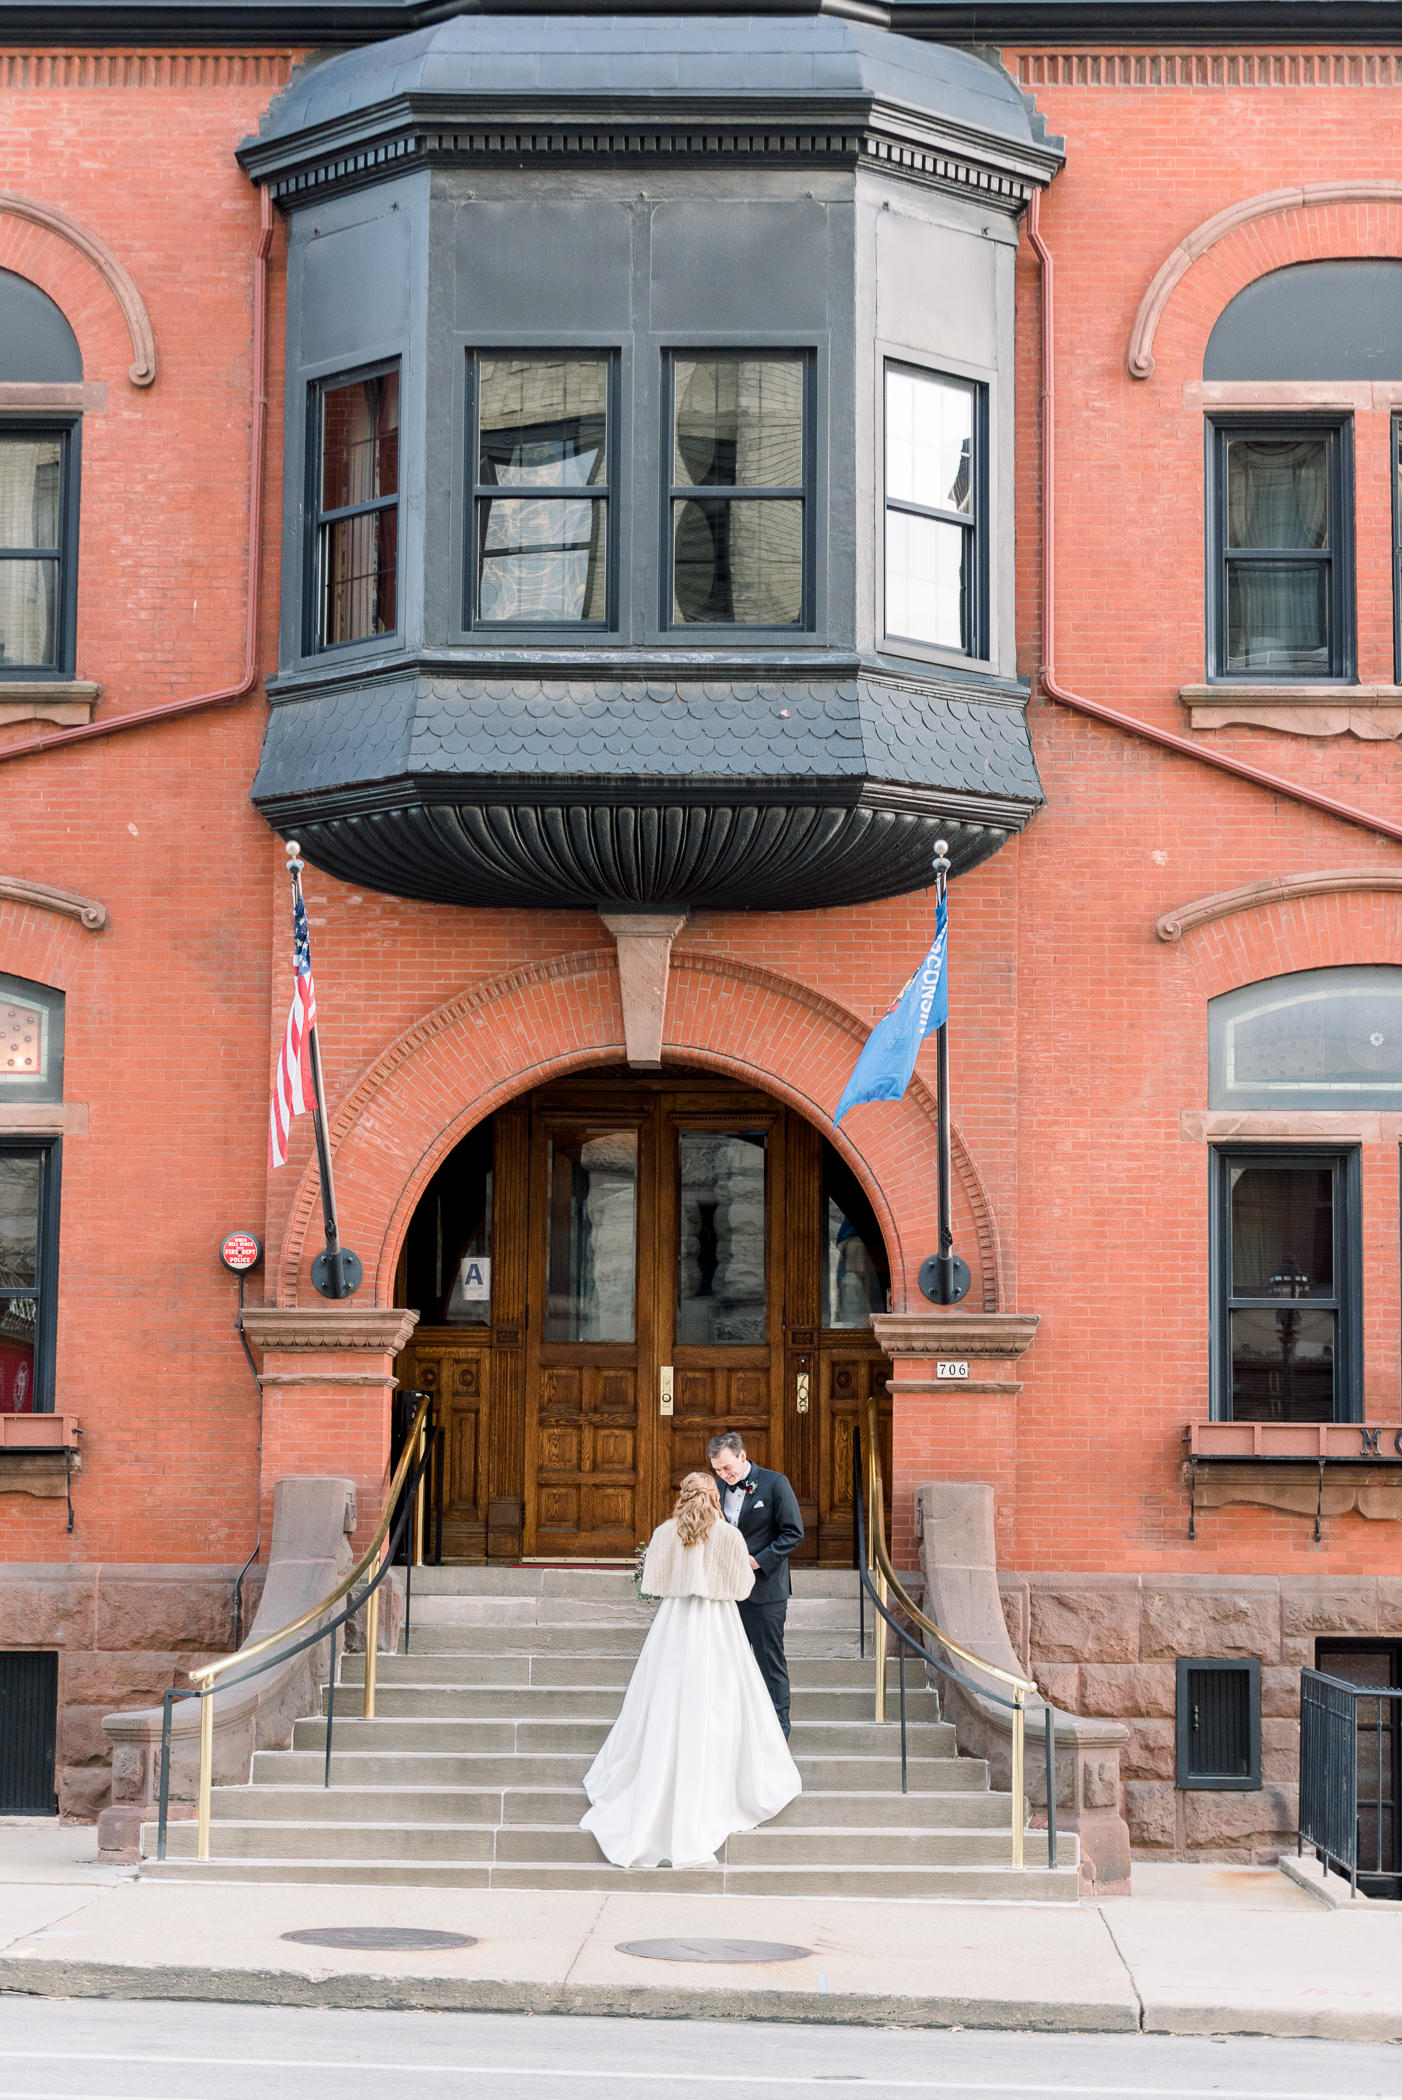 Pfister Hotel Wedding Photographers - Larissa Marie Photography